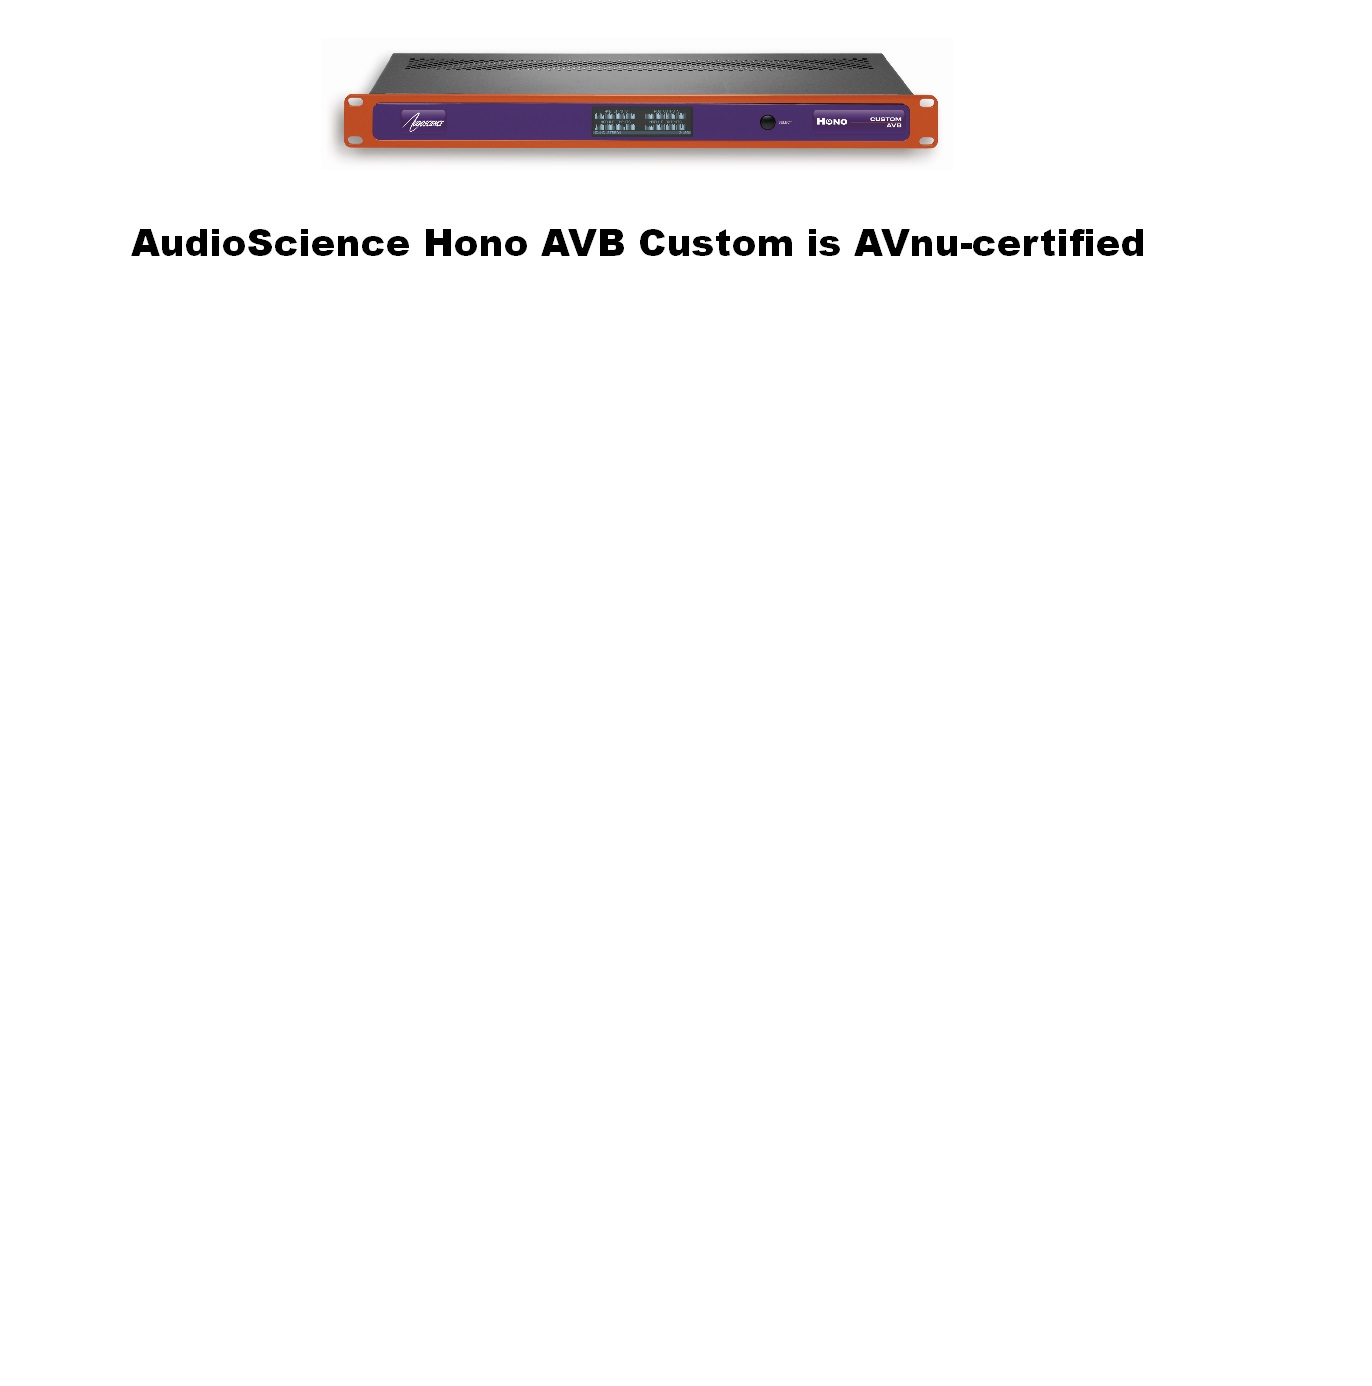 AudioScience-Hono-AVB-Custom9